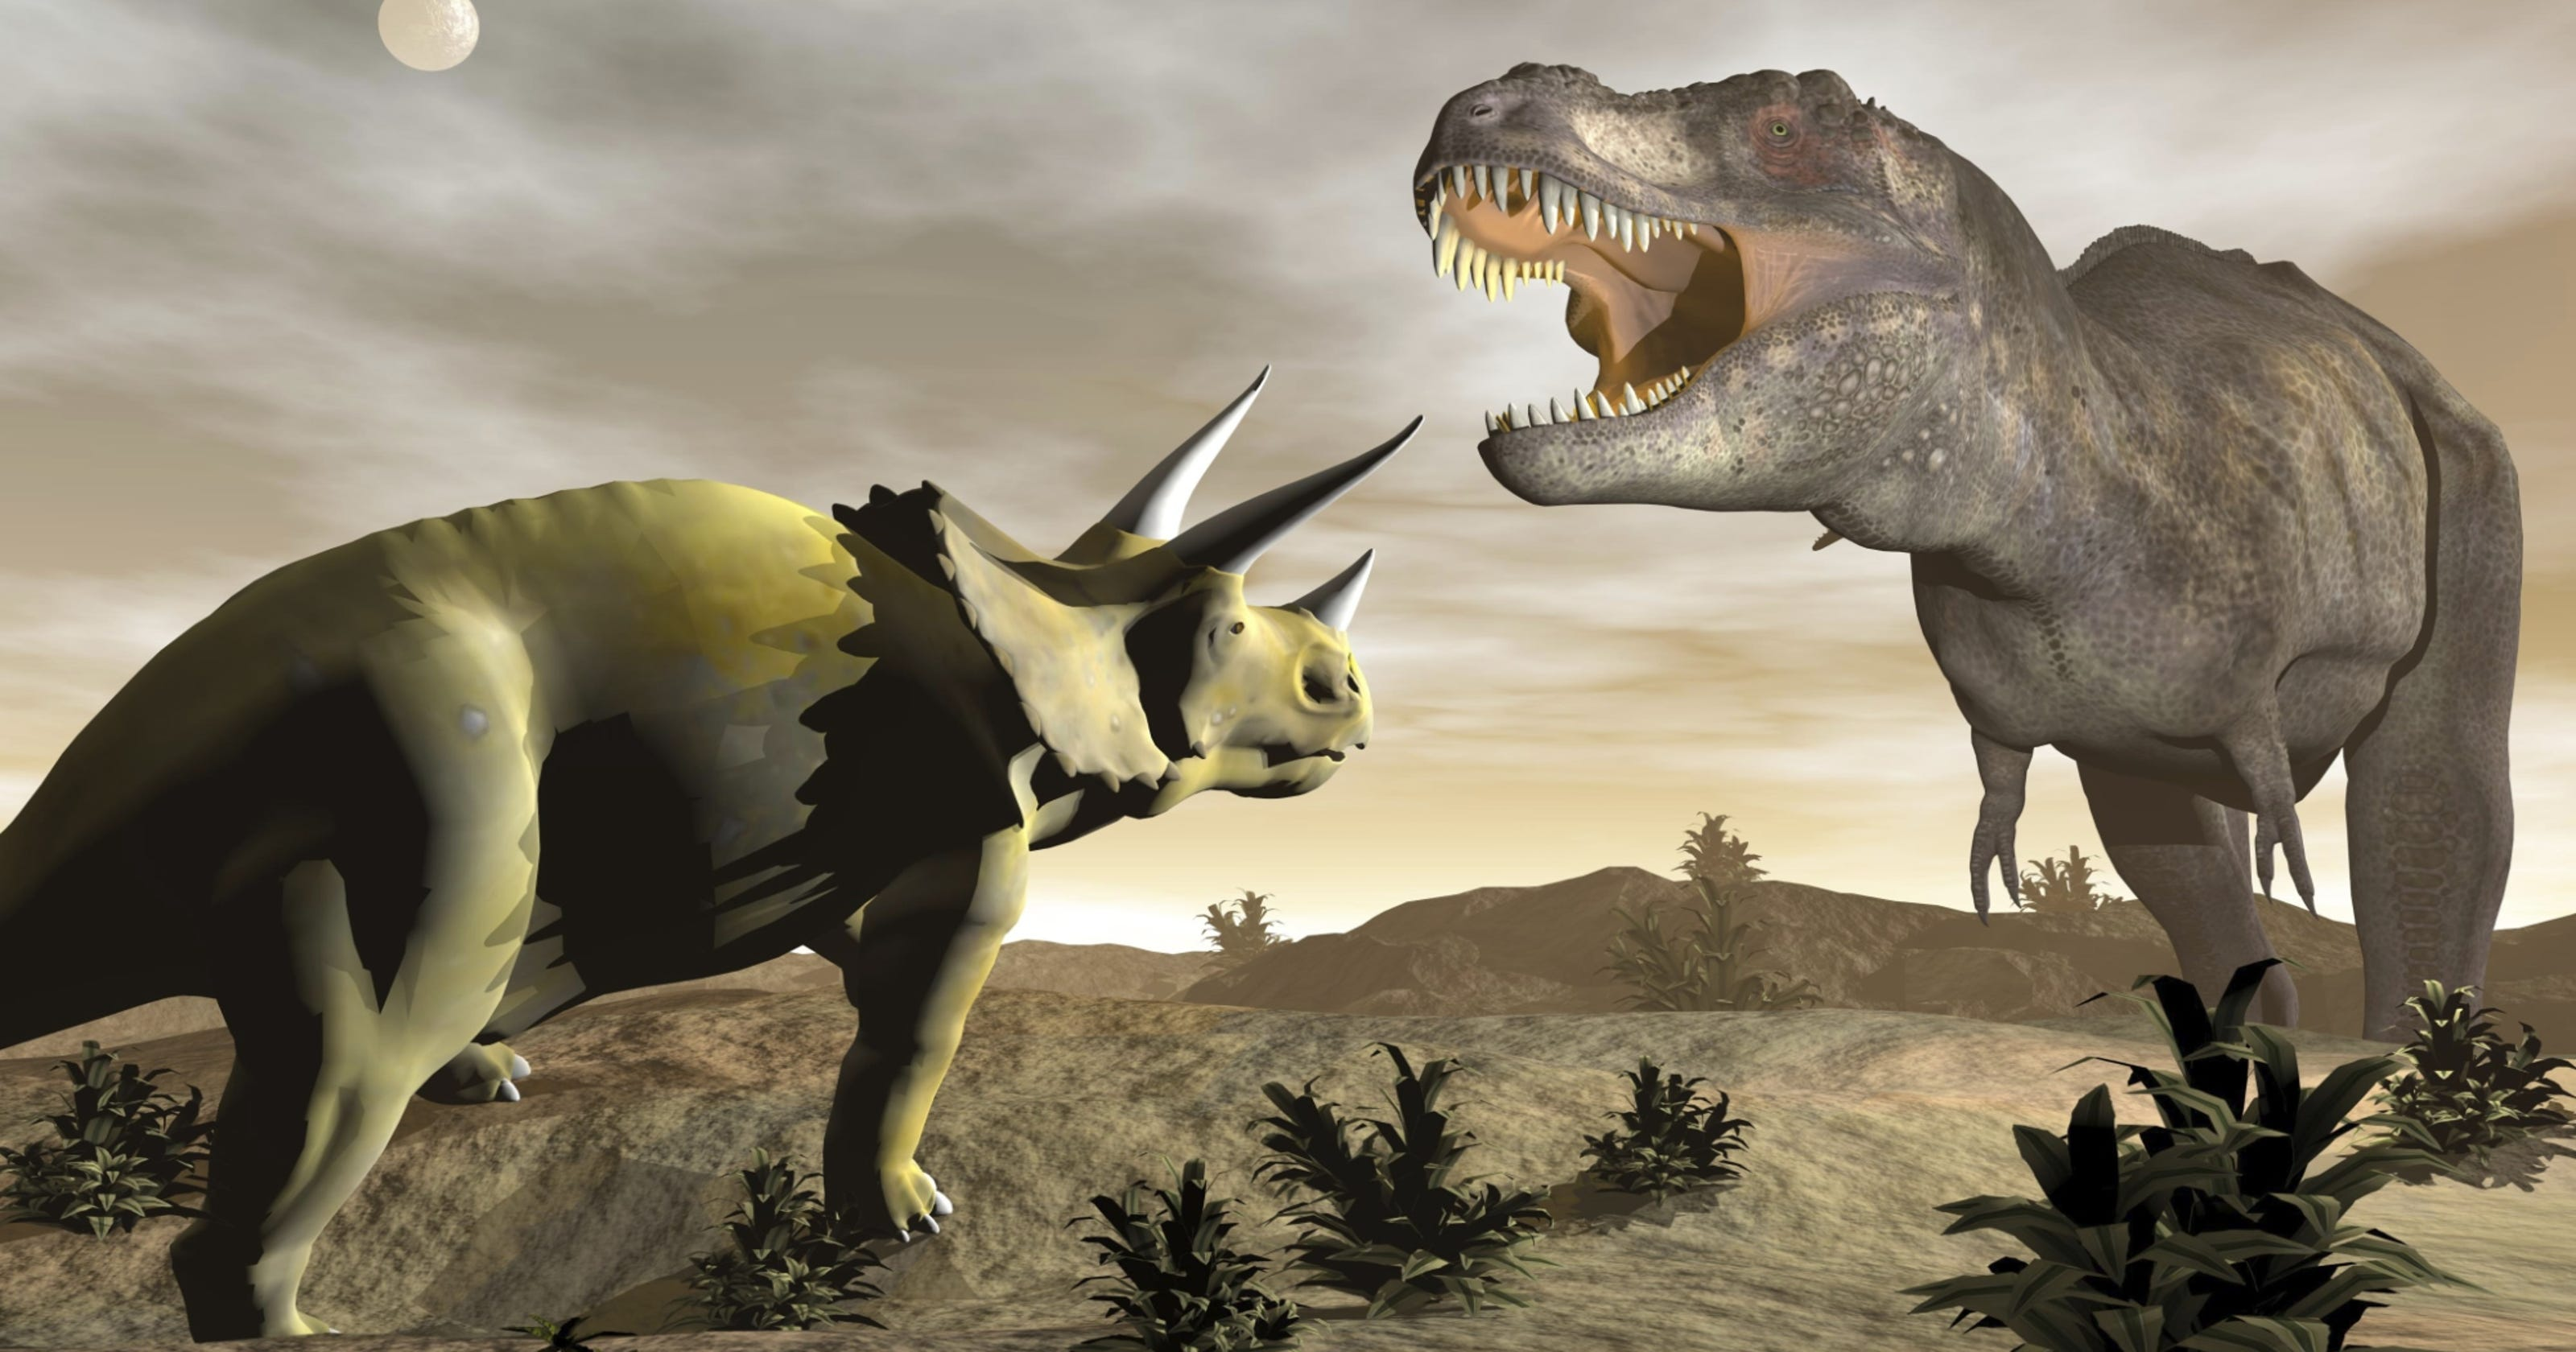 Dinosaur extinction: Was it caused by an asteroid, volcanoes, or both?